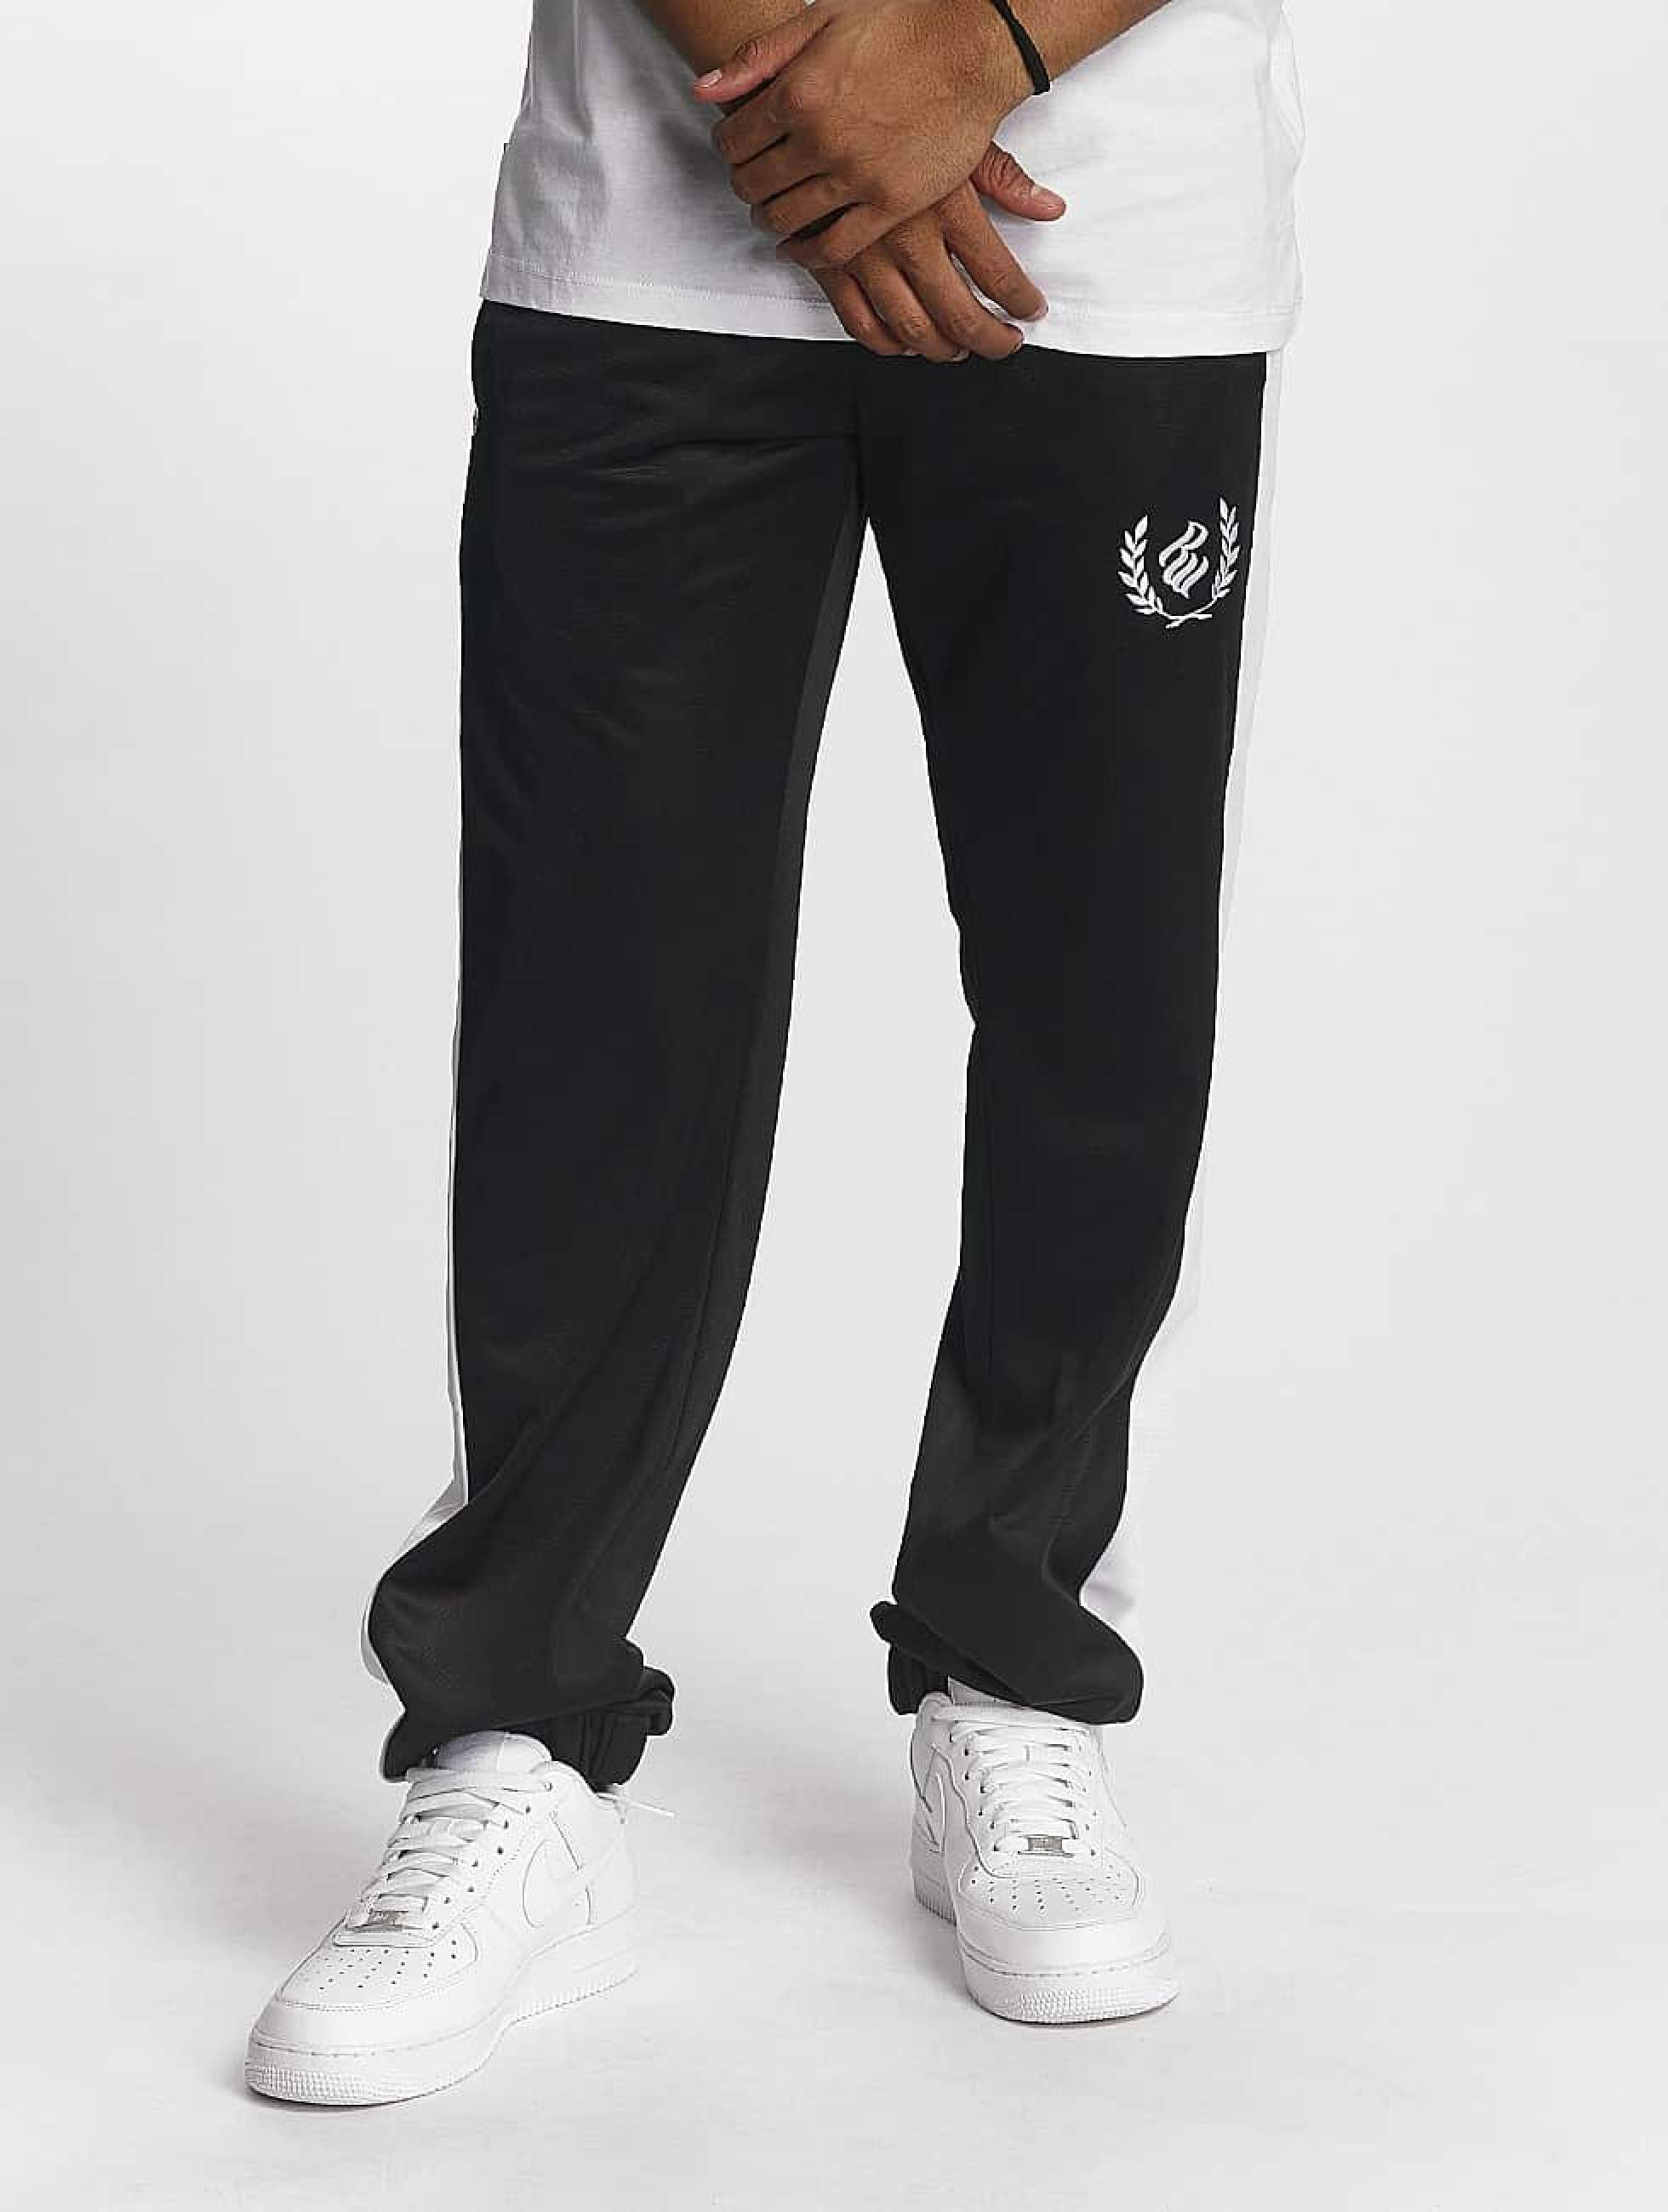 Rocawear / Sweat Pant Lisias in black XL